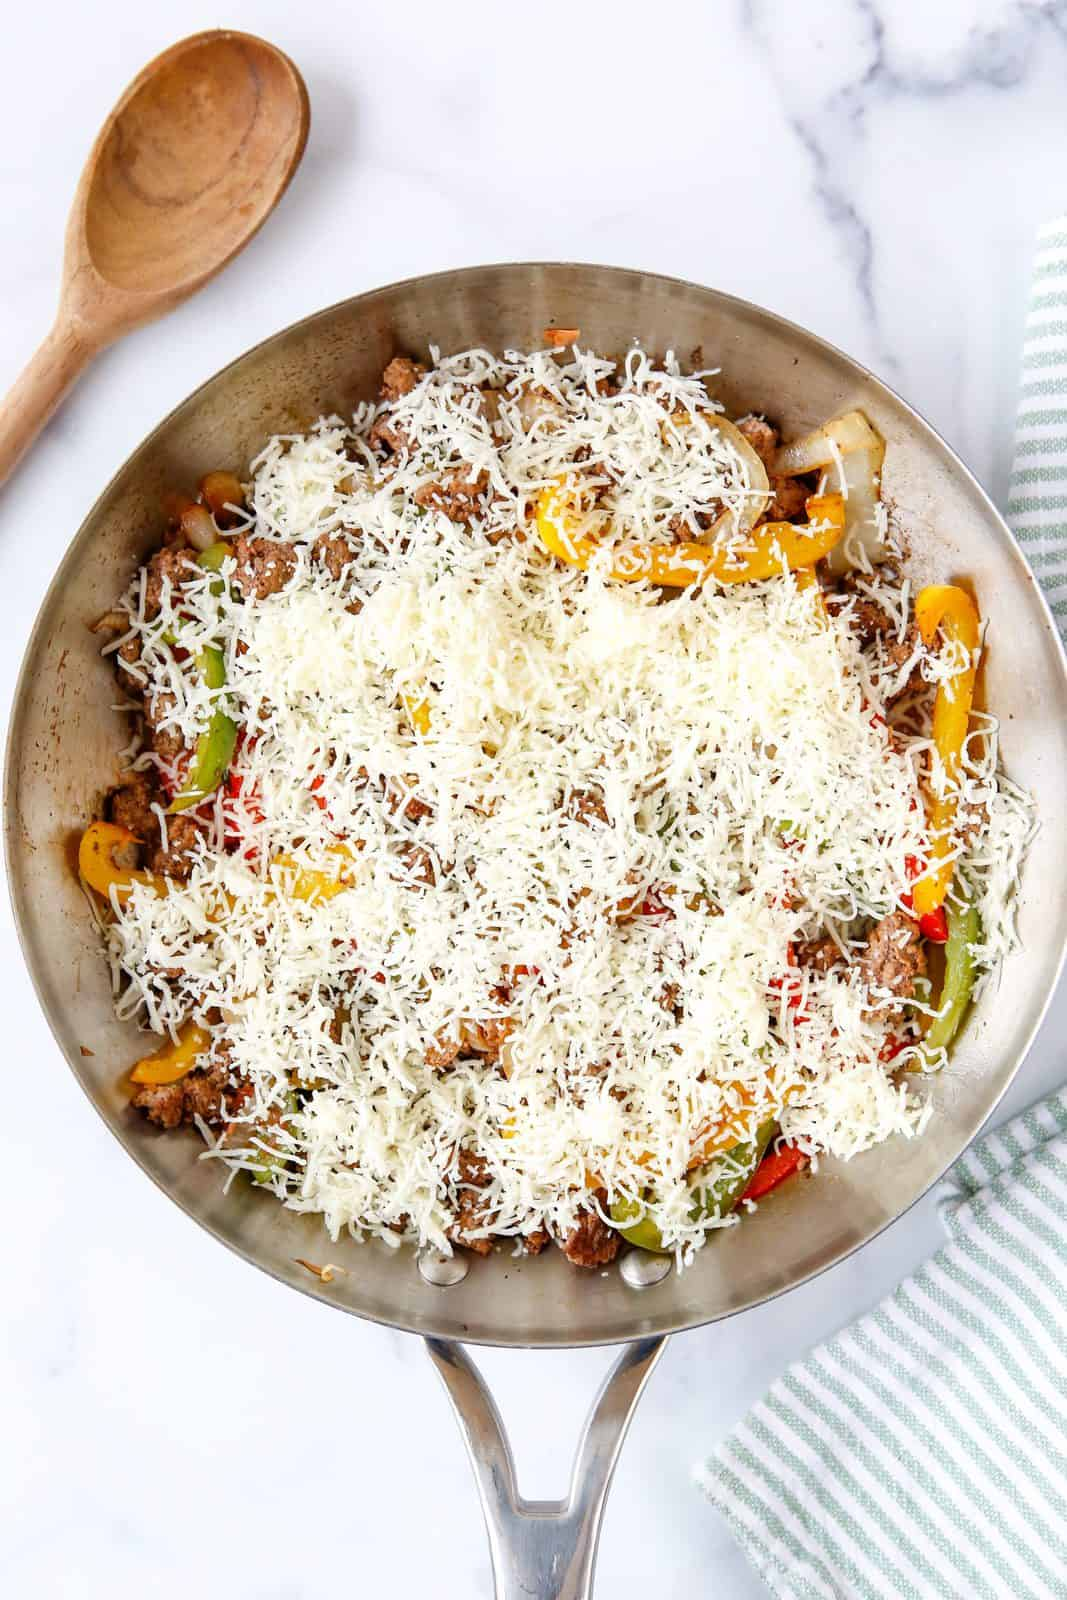 Shredded cheese added to top of all the ingredients in the skillet.